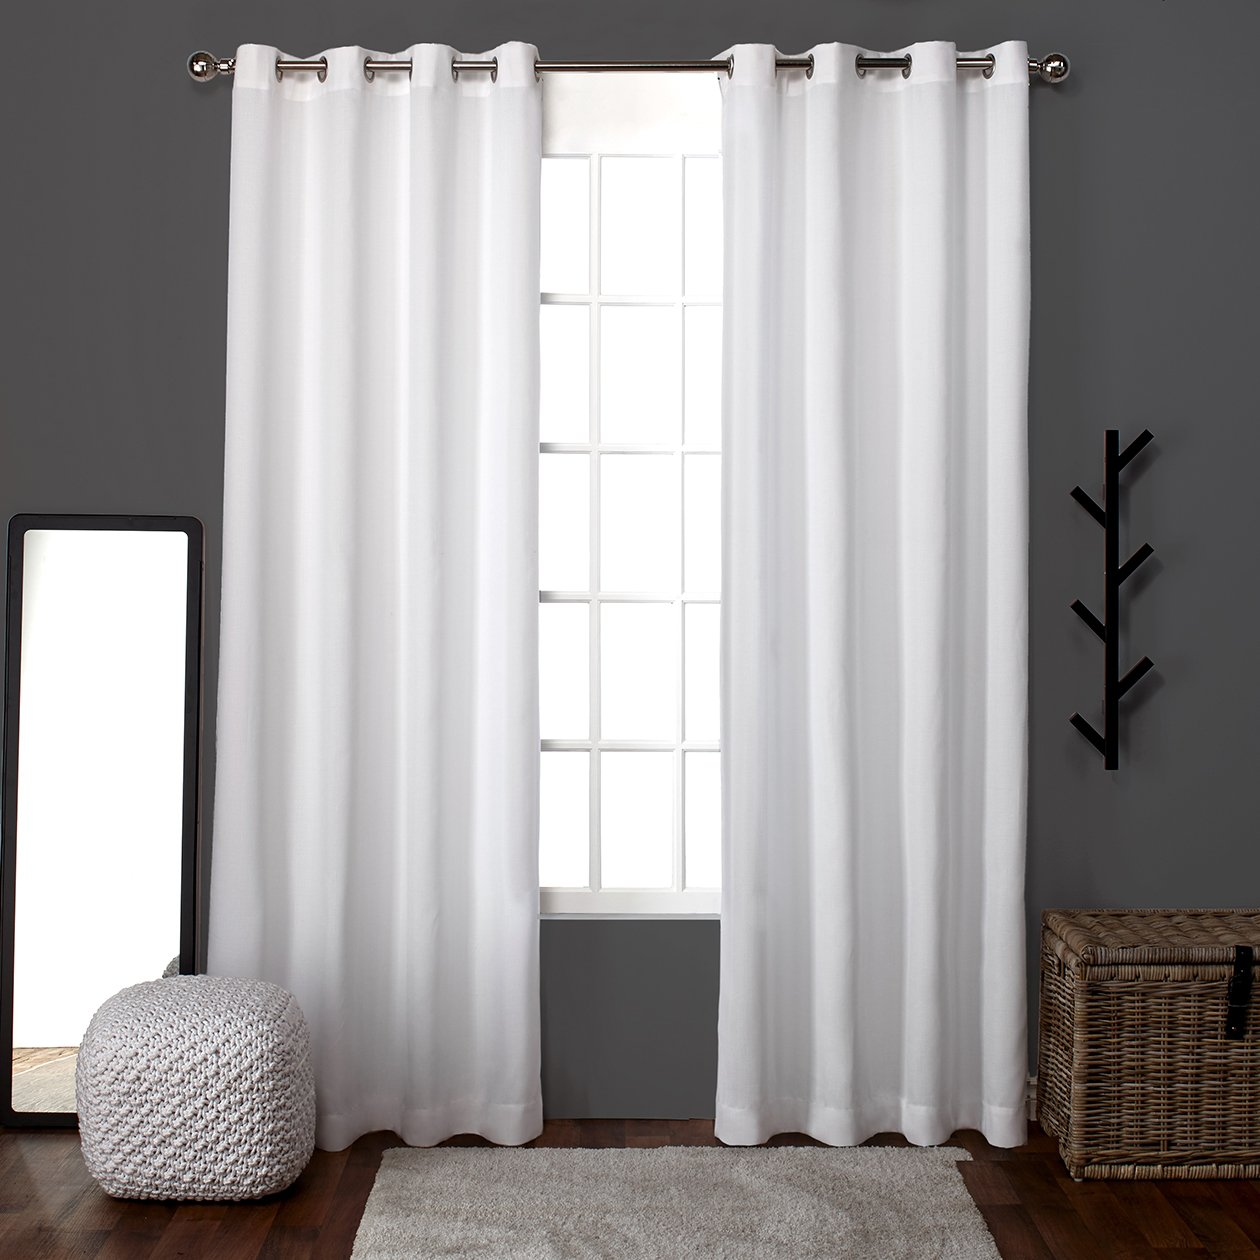 White window curtains - Amazon Com Exclusive Home Curtains Loha Linen Grommet Top Window Curtain Panel Pair Winter White 52x96 Home Kitchen